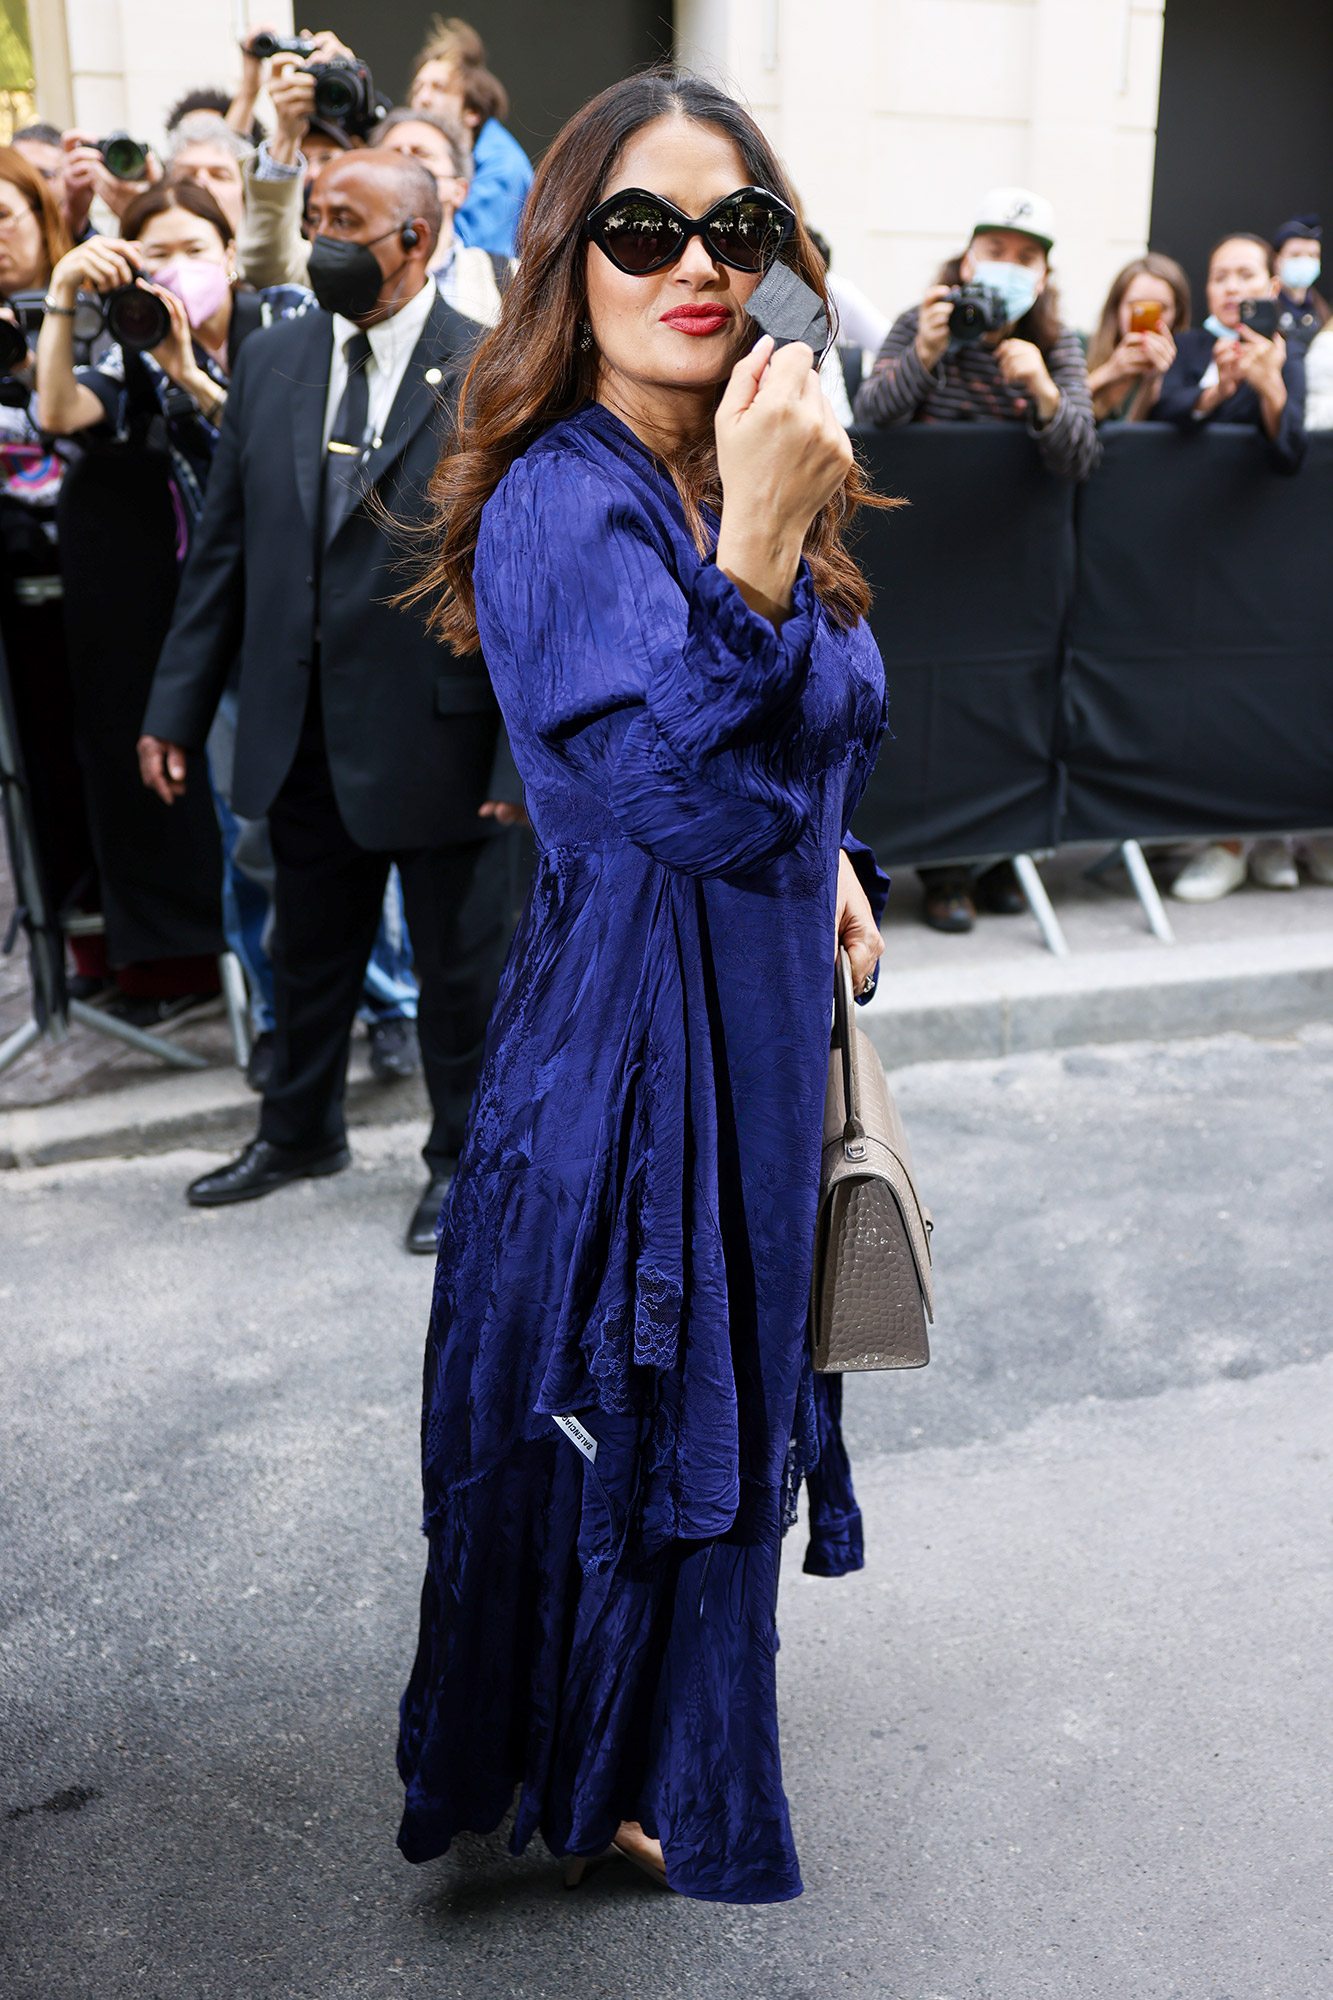 Salma Hayek attends the Balenciaga Haute Couture Fall/Winter 2021/2022 show as part of Paris Fashion Week on July 07, 2021 in Paris, France